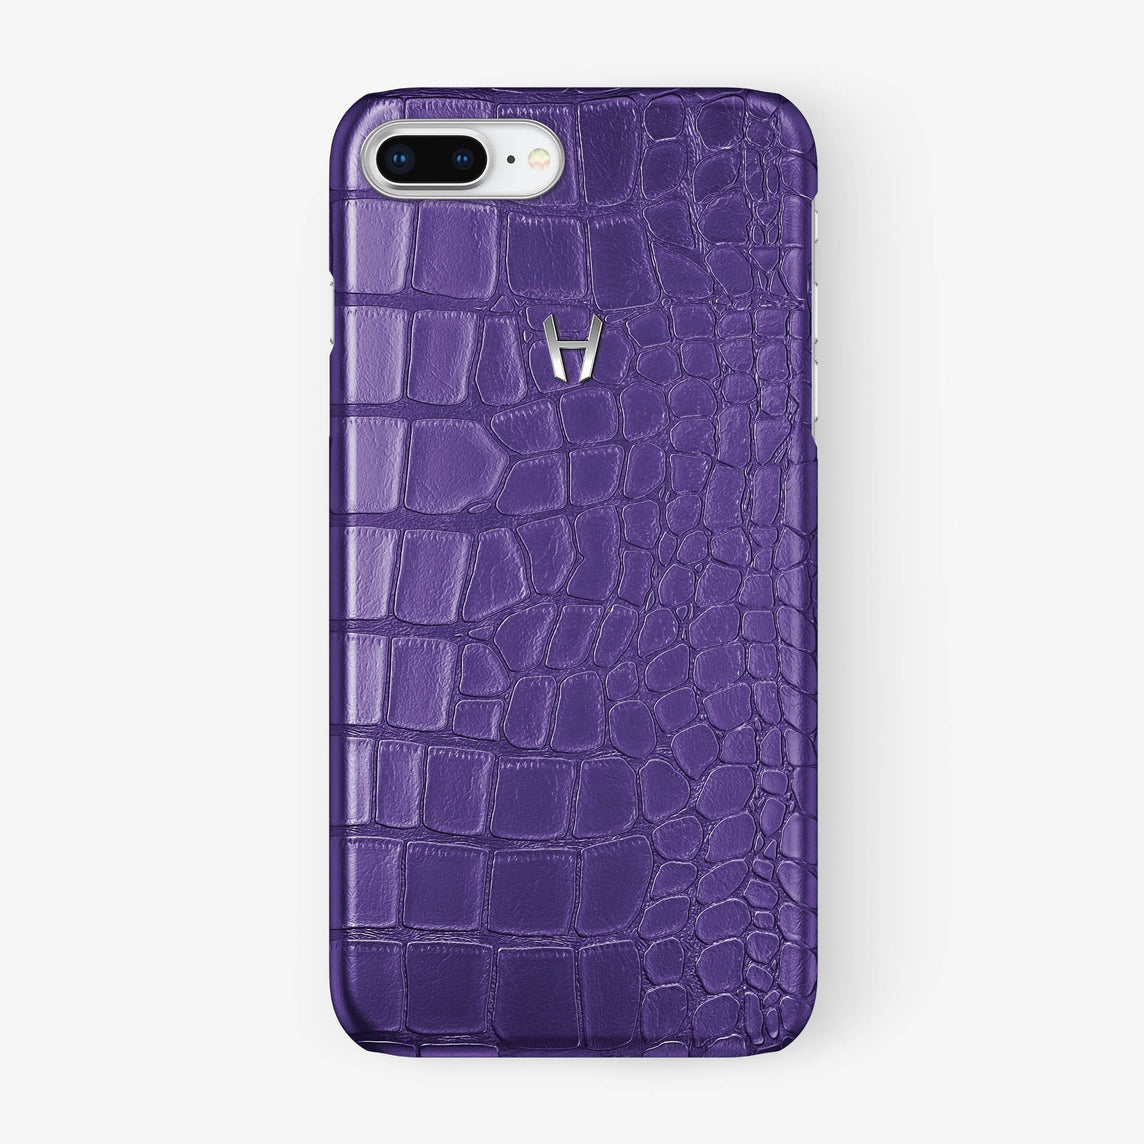 Alligator Case iPhone 7/8 Plus | Purple - Stainless Steel - Hadoro